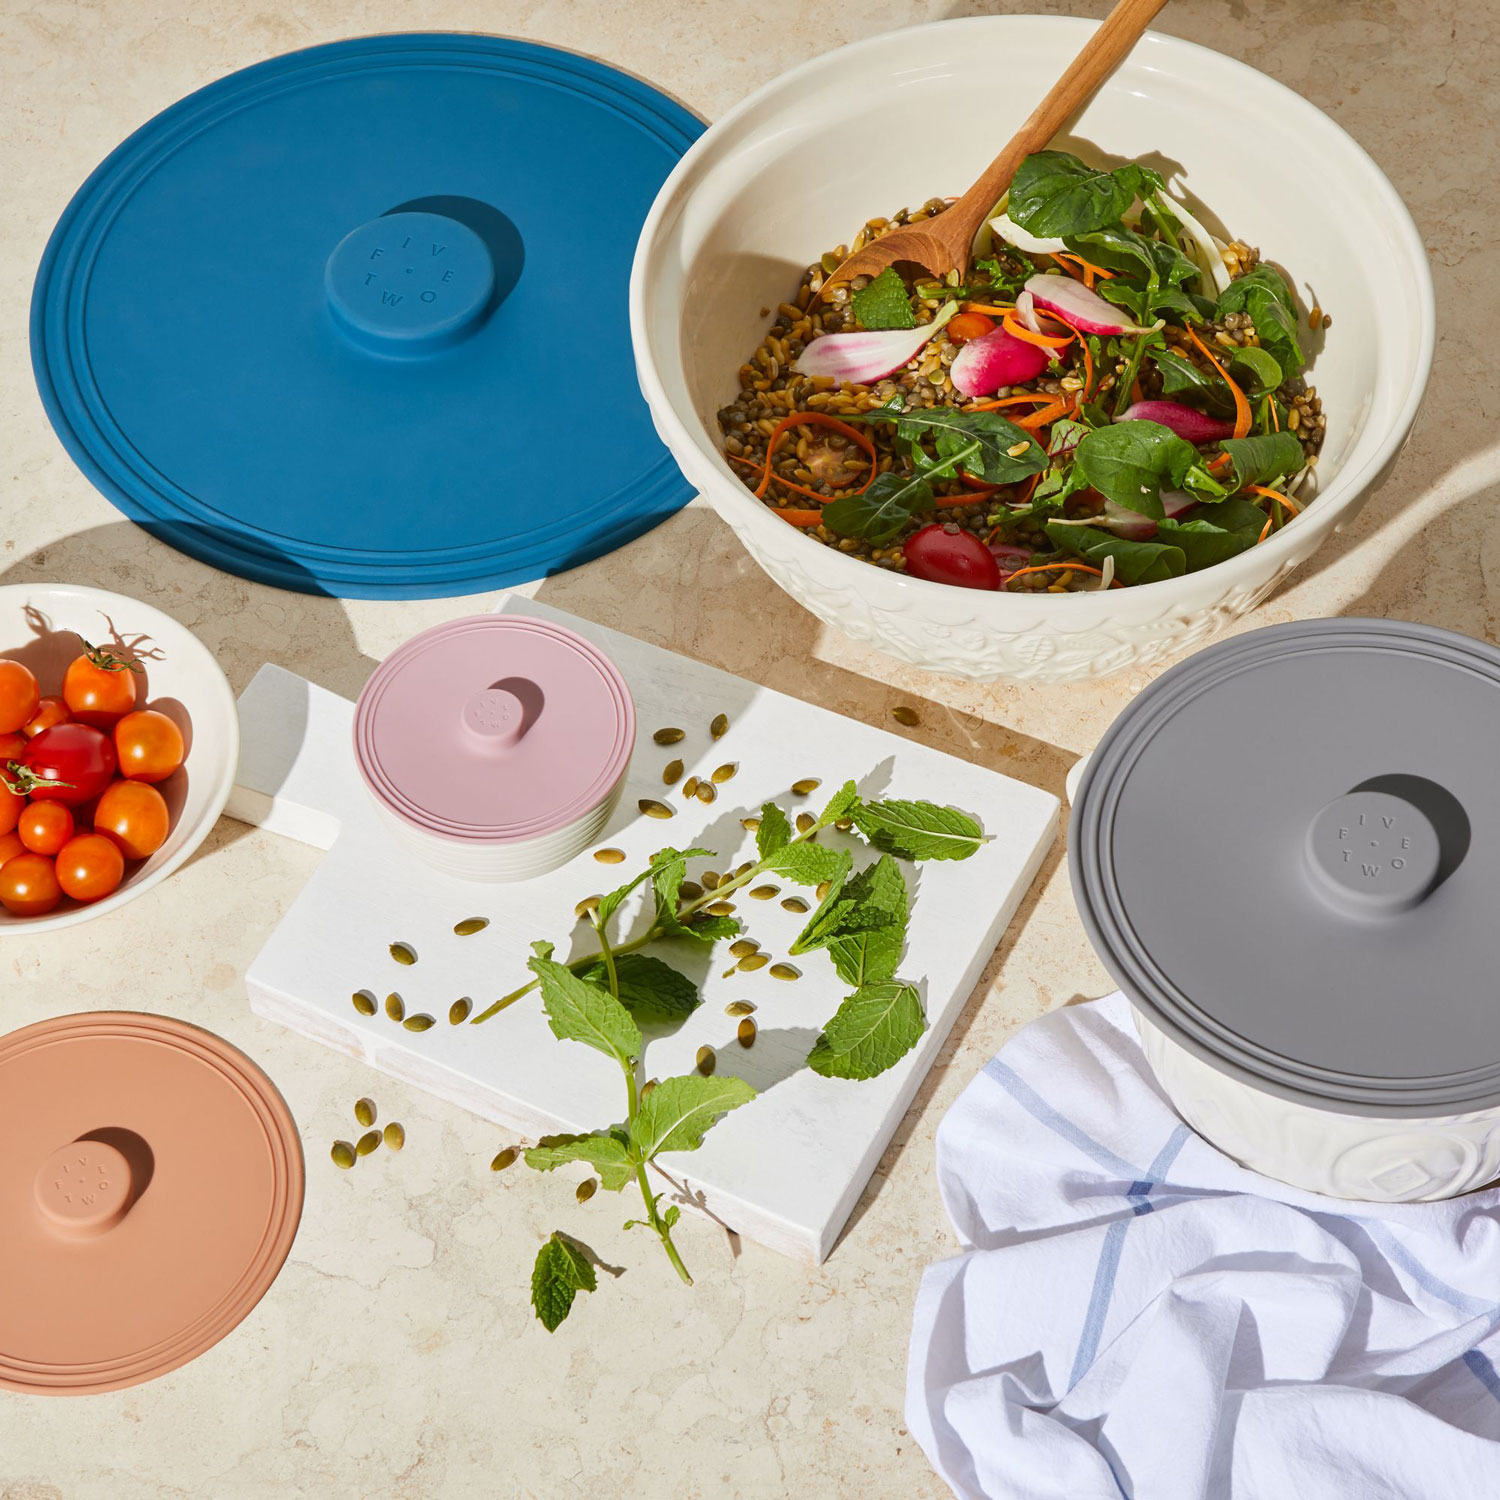 These Airtight Lids Are Perfect for Storing Pots Directly in the Fridge